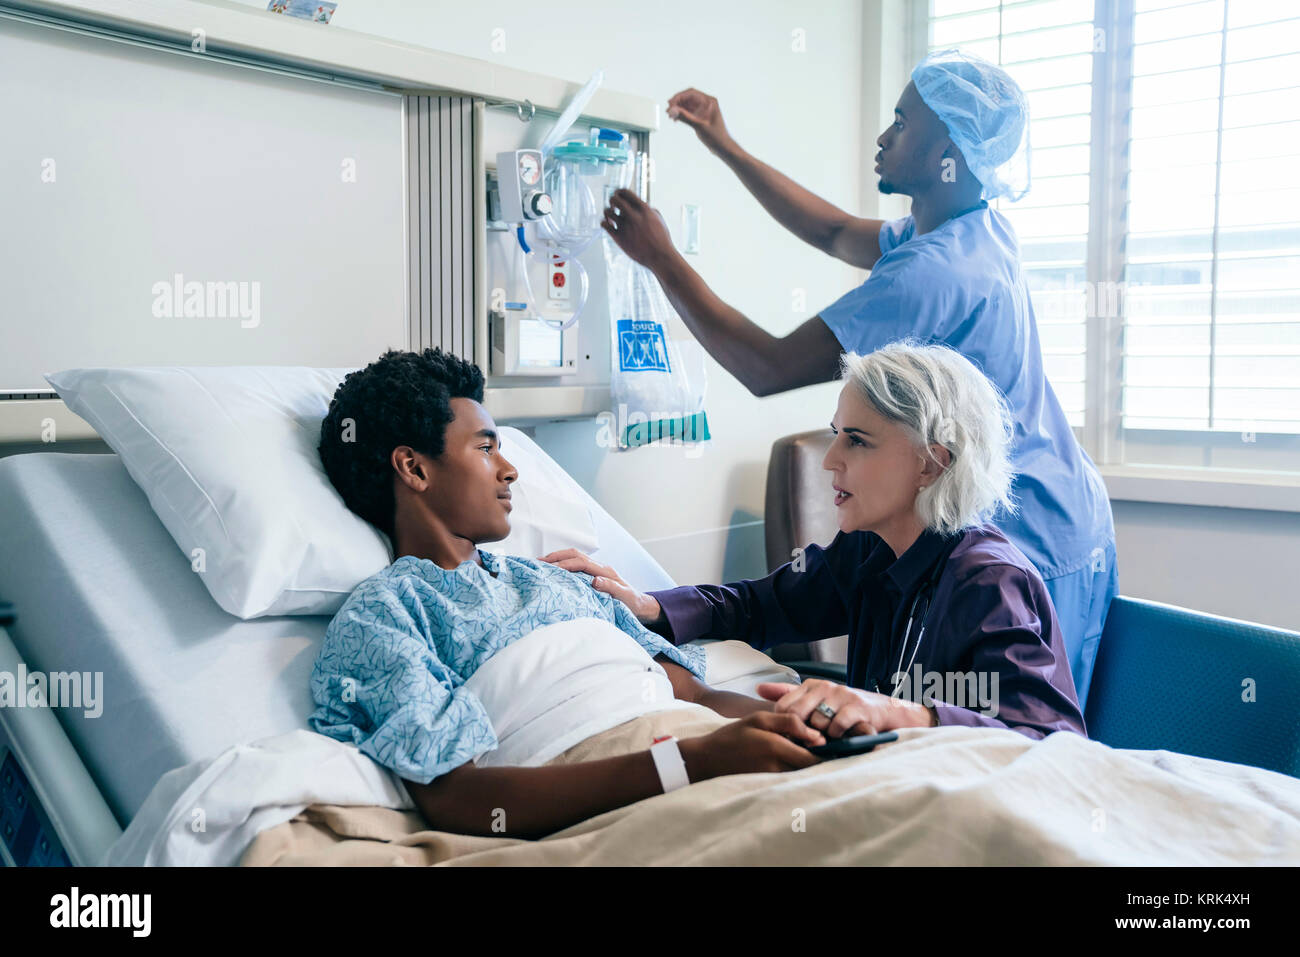 Doctor comforting boy laying in hospital bed - Stock Image